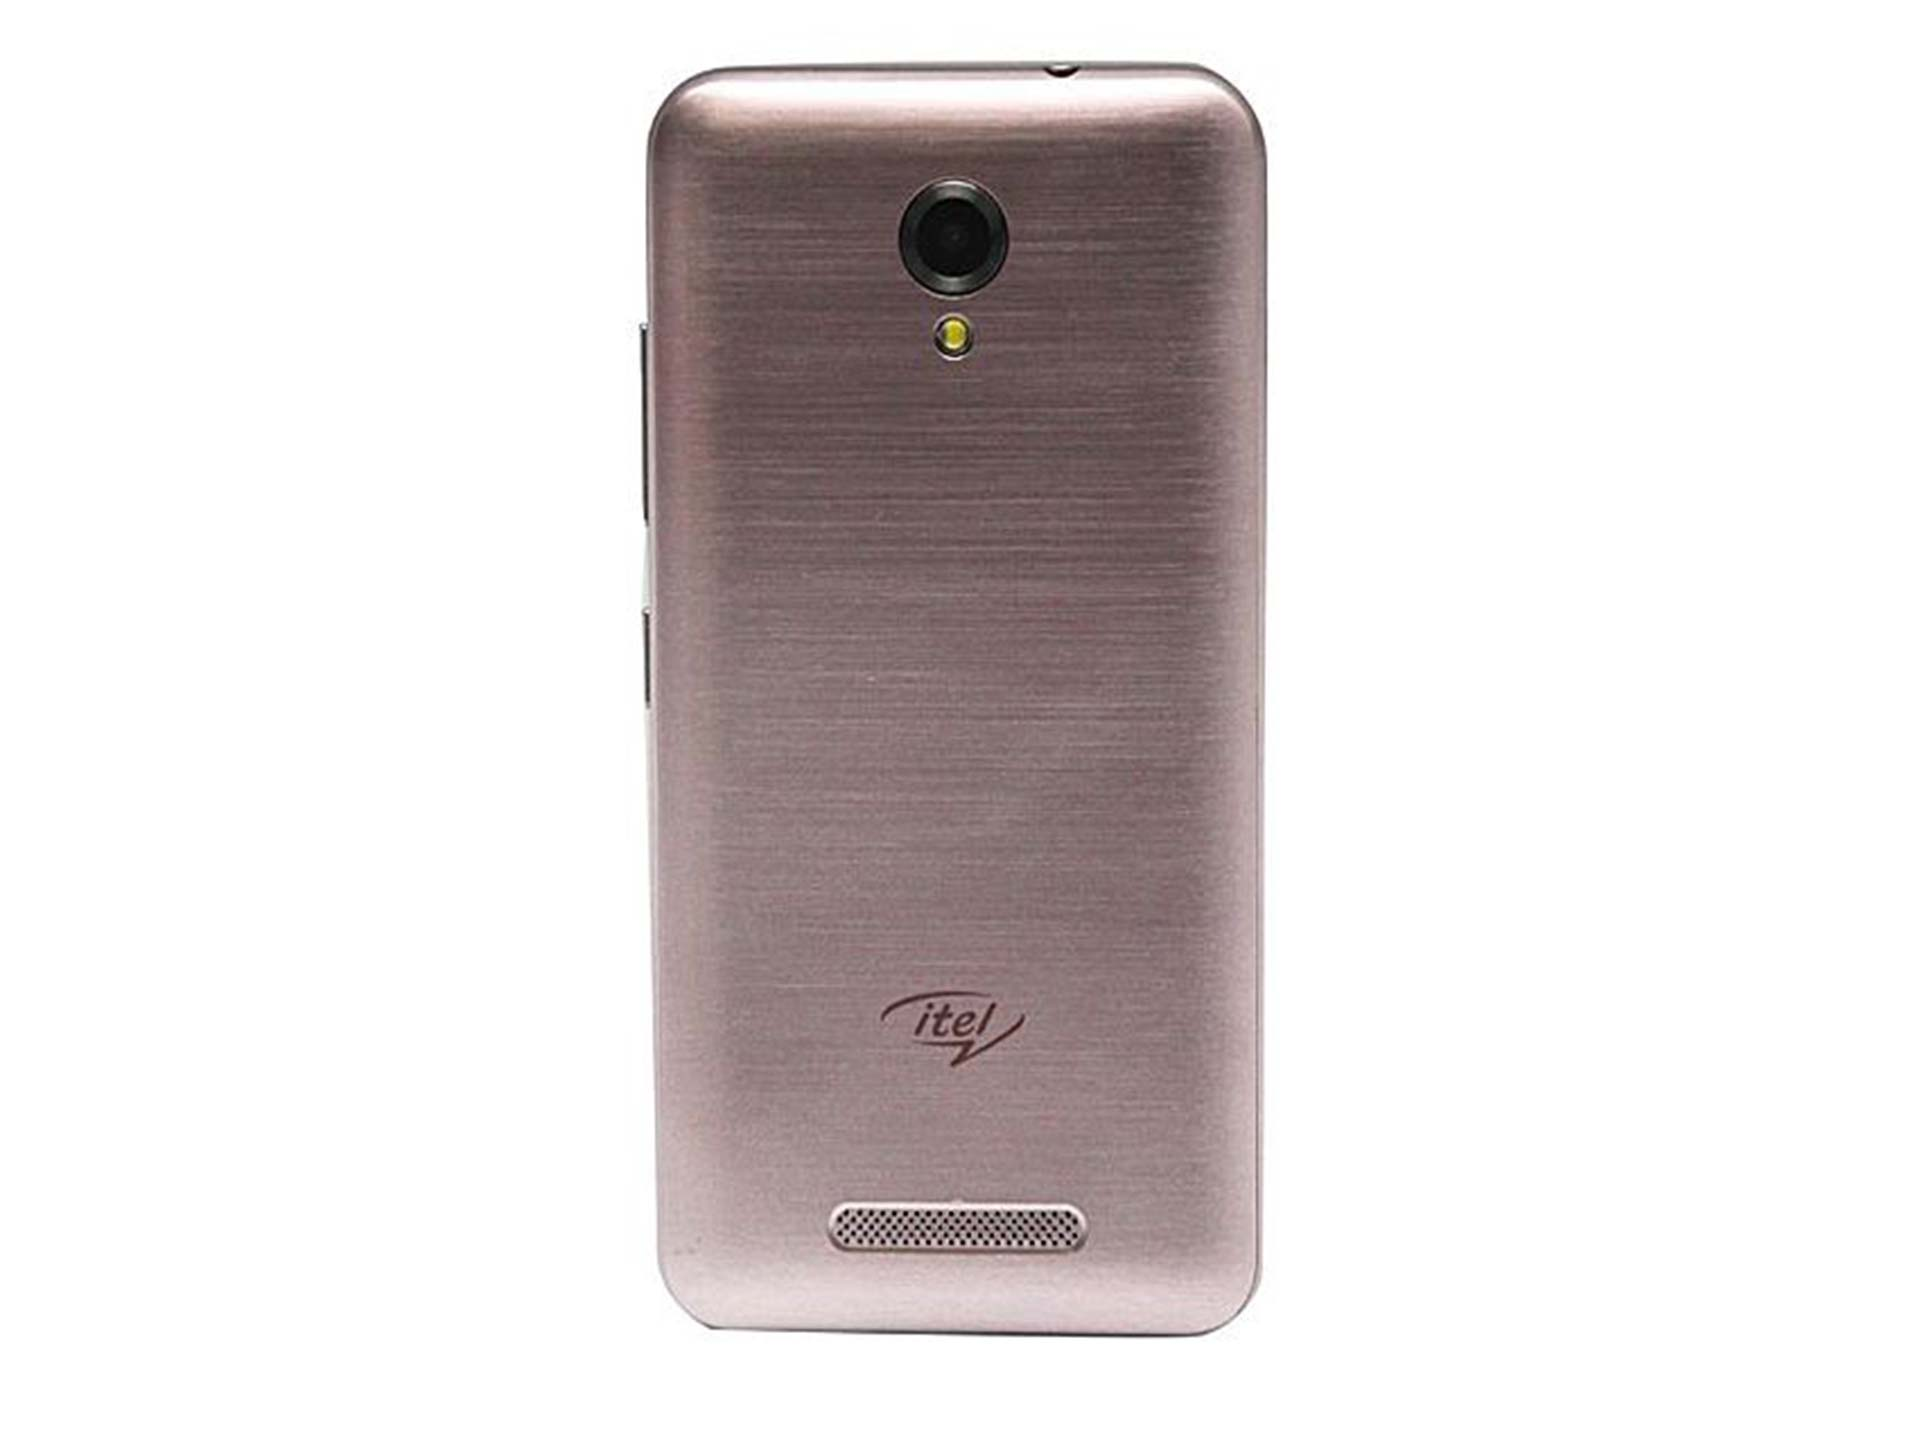 Grey Buy Itel Itel A11 - Bikeriverside